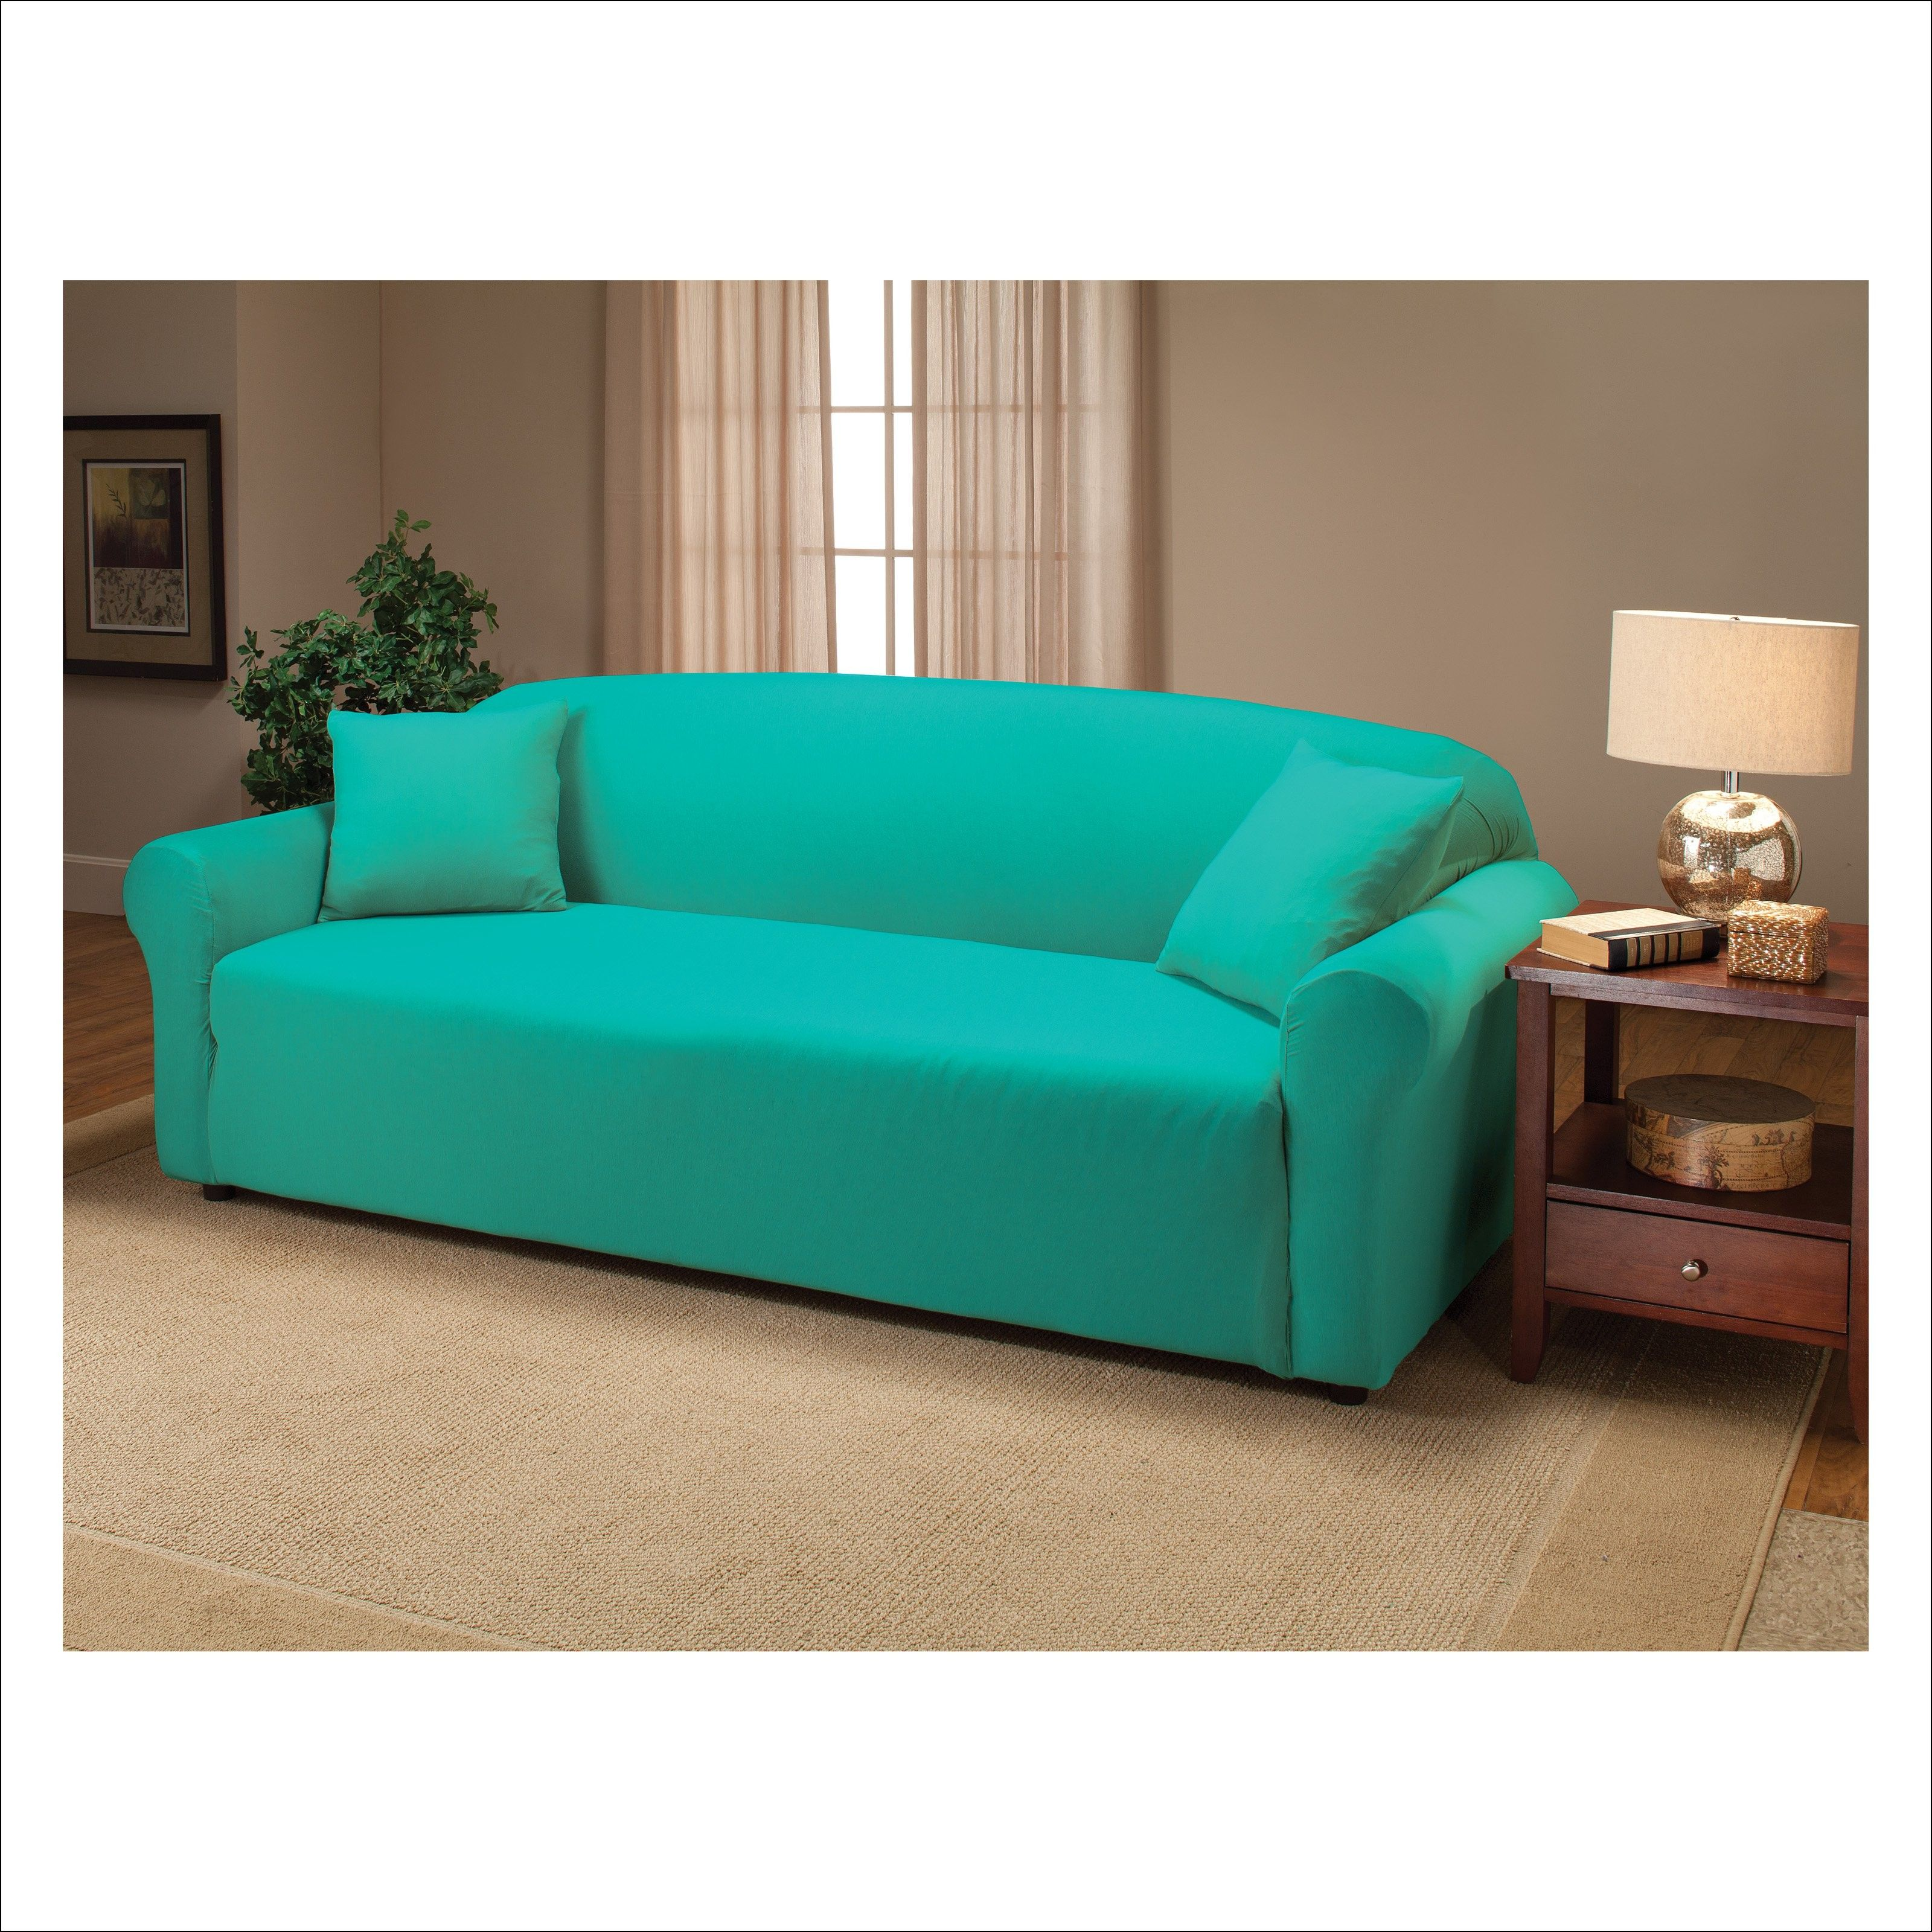 Stretch Covers For Sofa Cushions